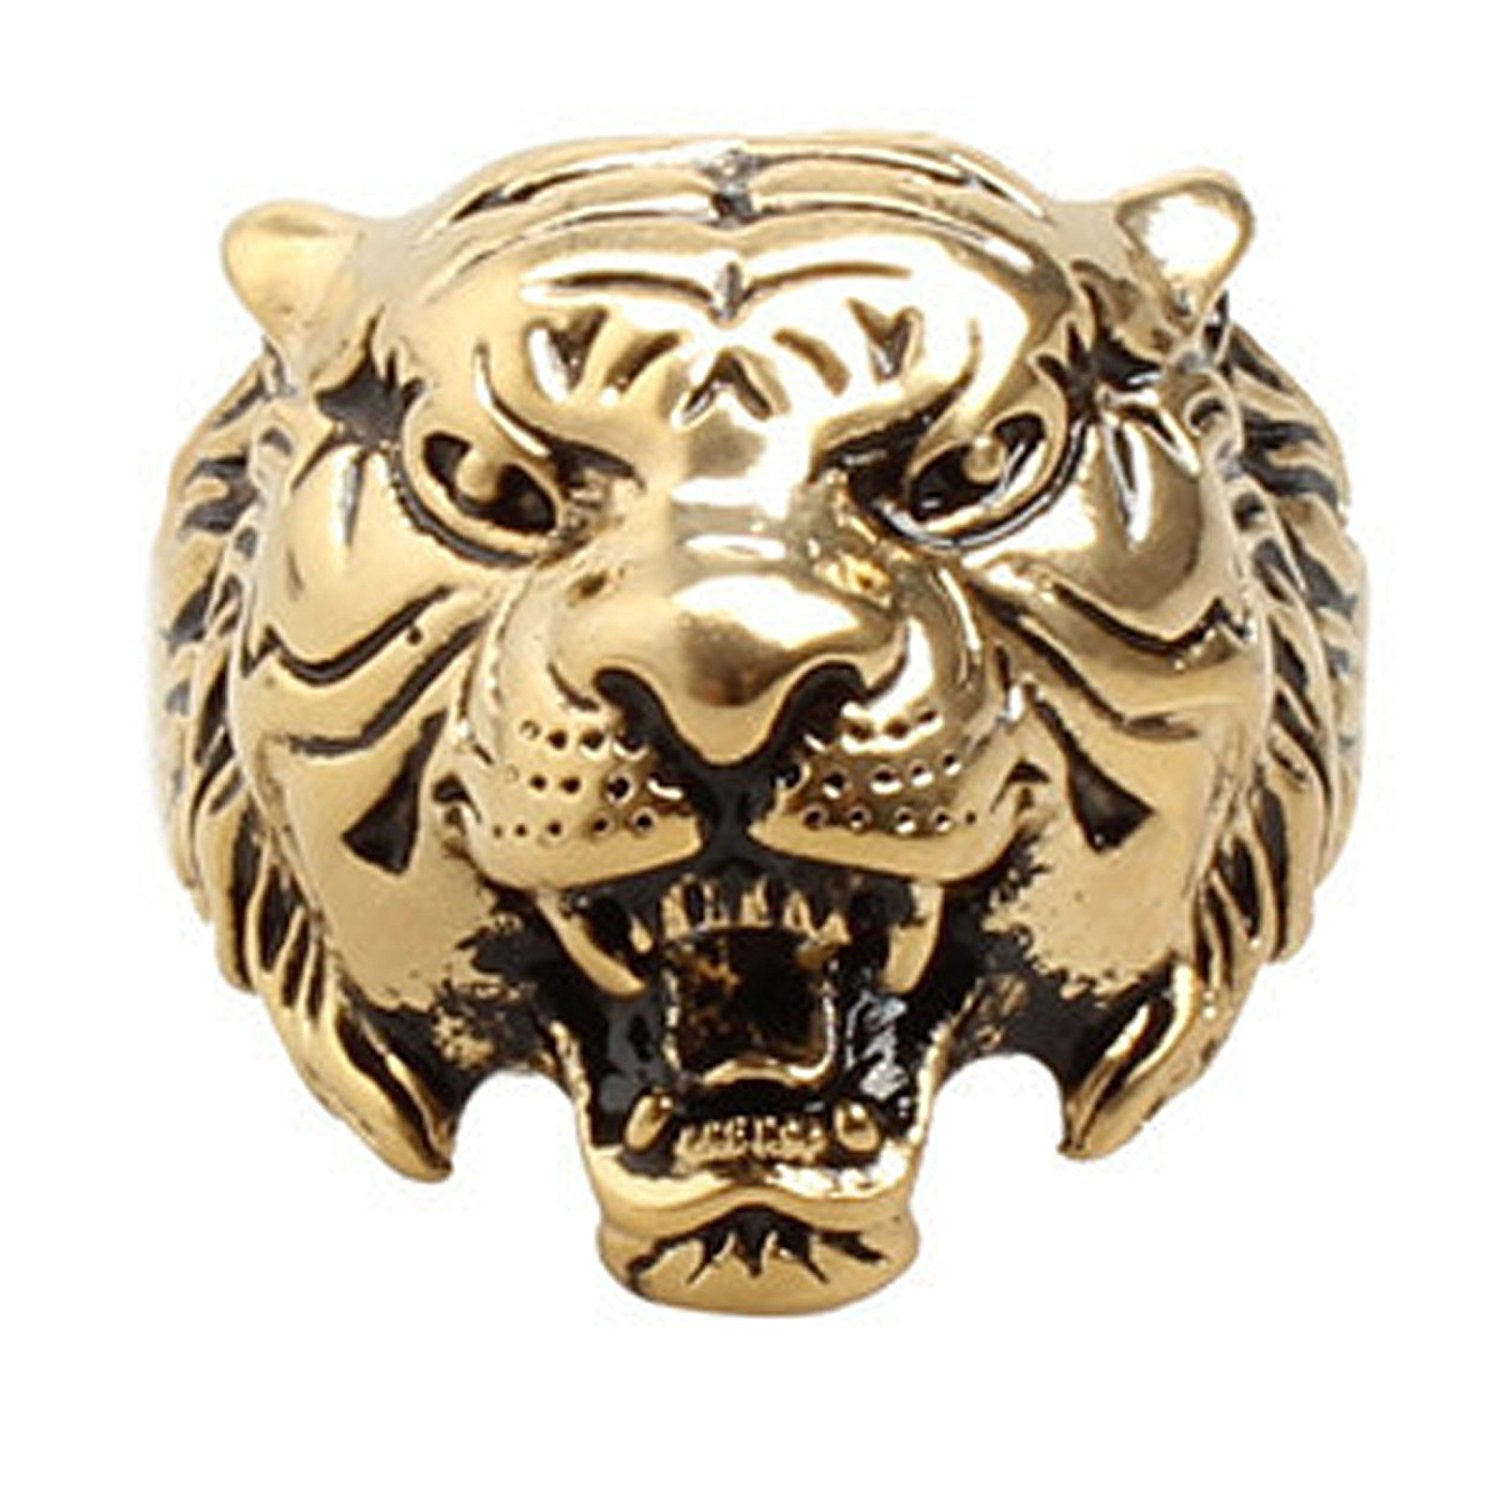 b391b6a292bc70 Get Quotations · Eamaott Men's Vintage Silver Gold Domineering Tiger Head  Ring Stainless Steel Personalized Ring Size ...